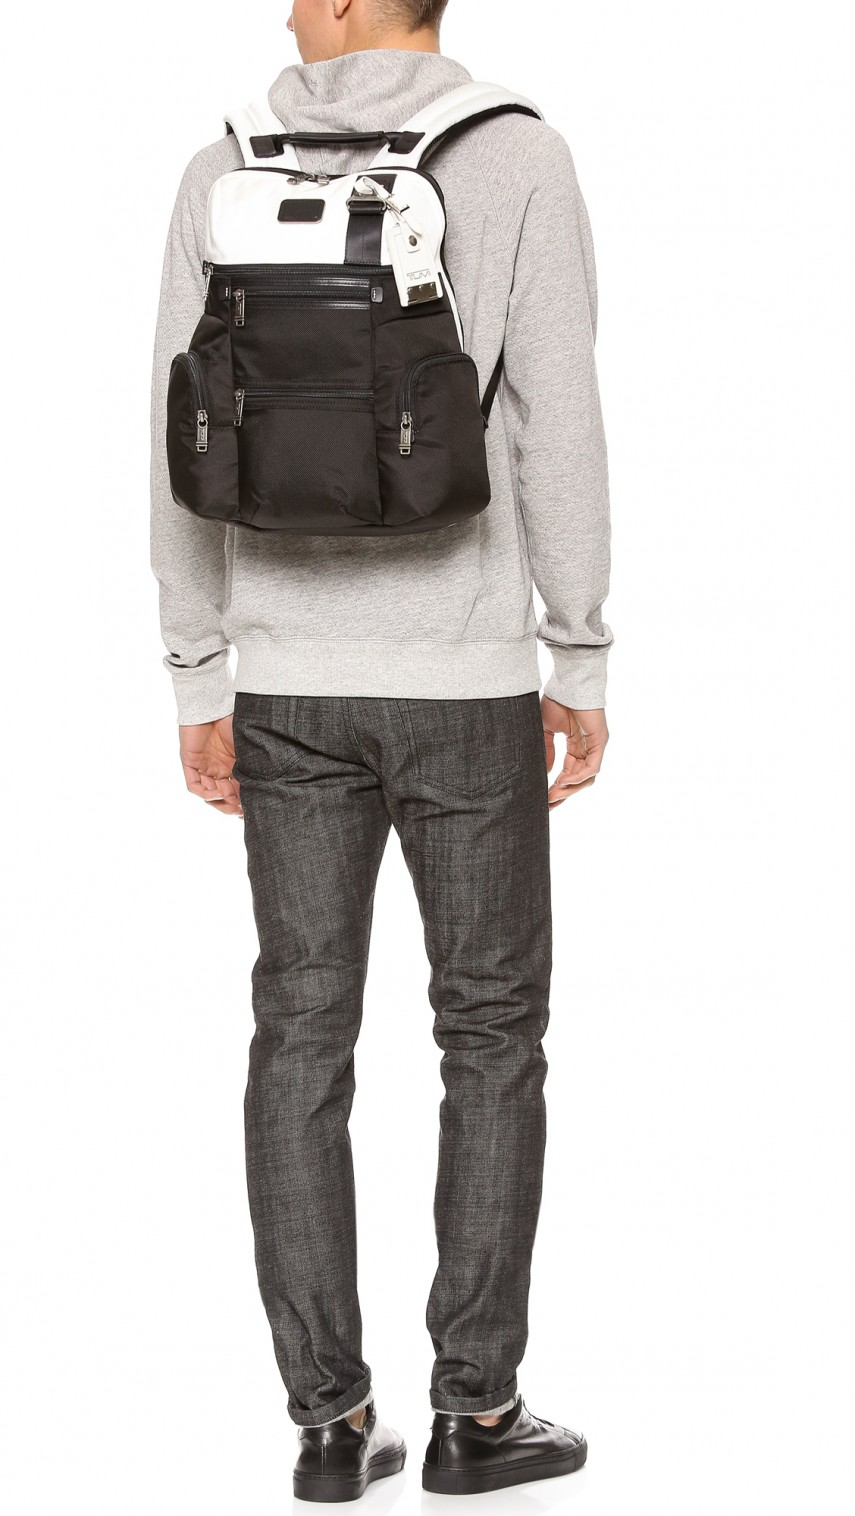 Knox Rucksack | Tumi Alpha Bravo | Tumi Alpha Leather Backpack